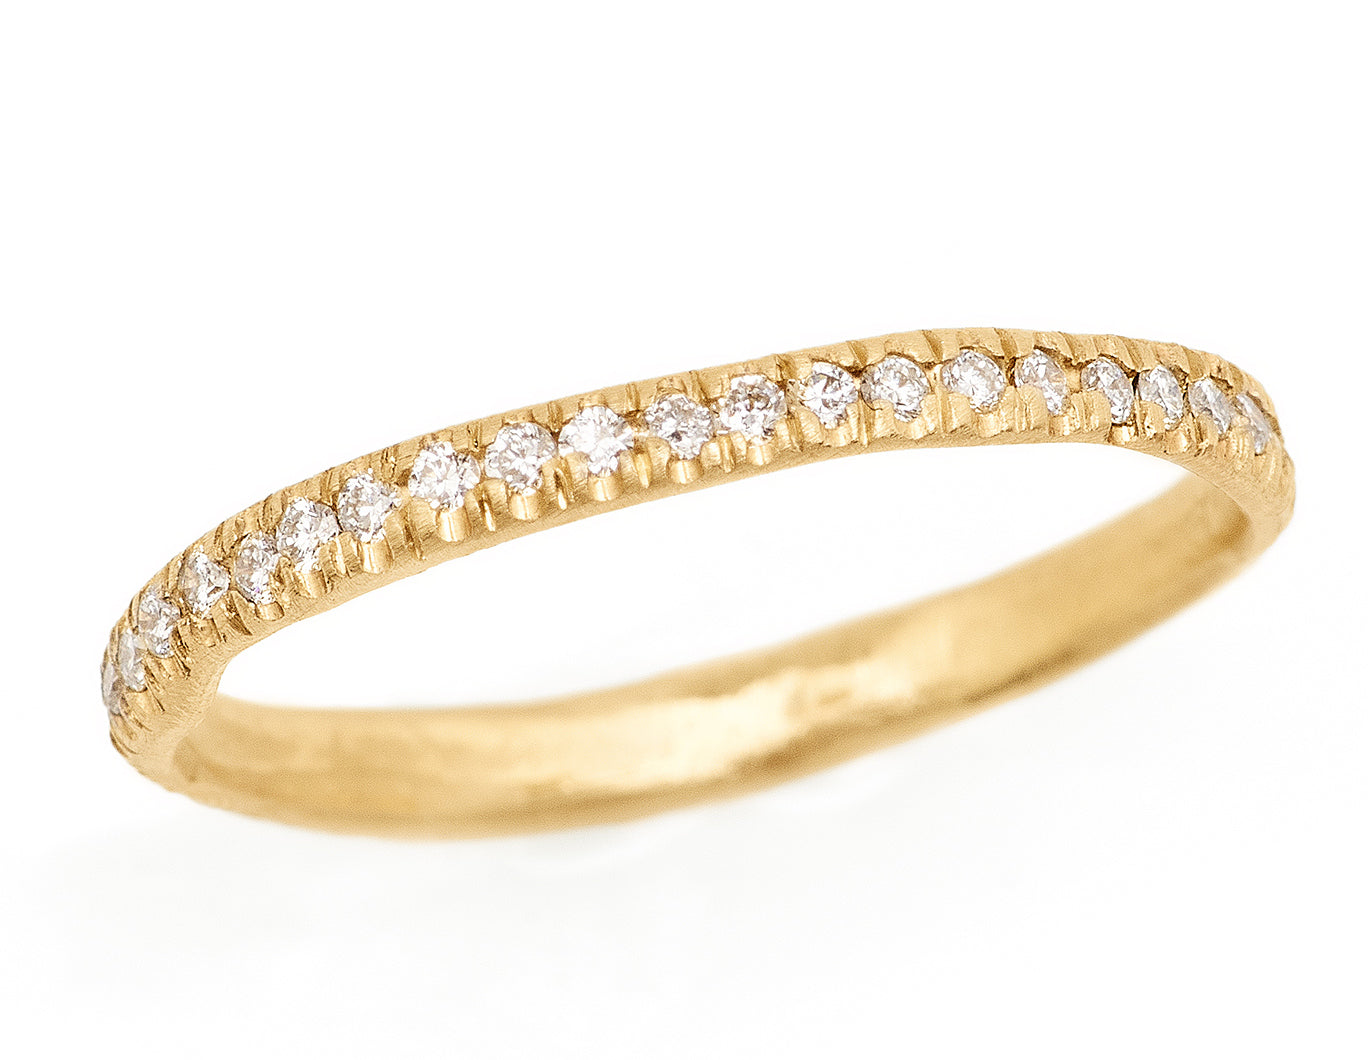 14kt gold pave diamond eternity band